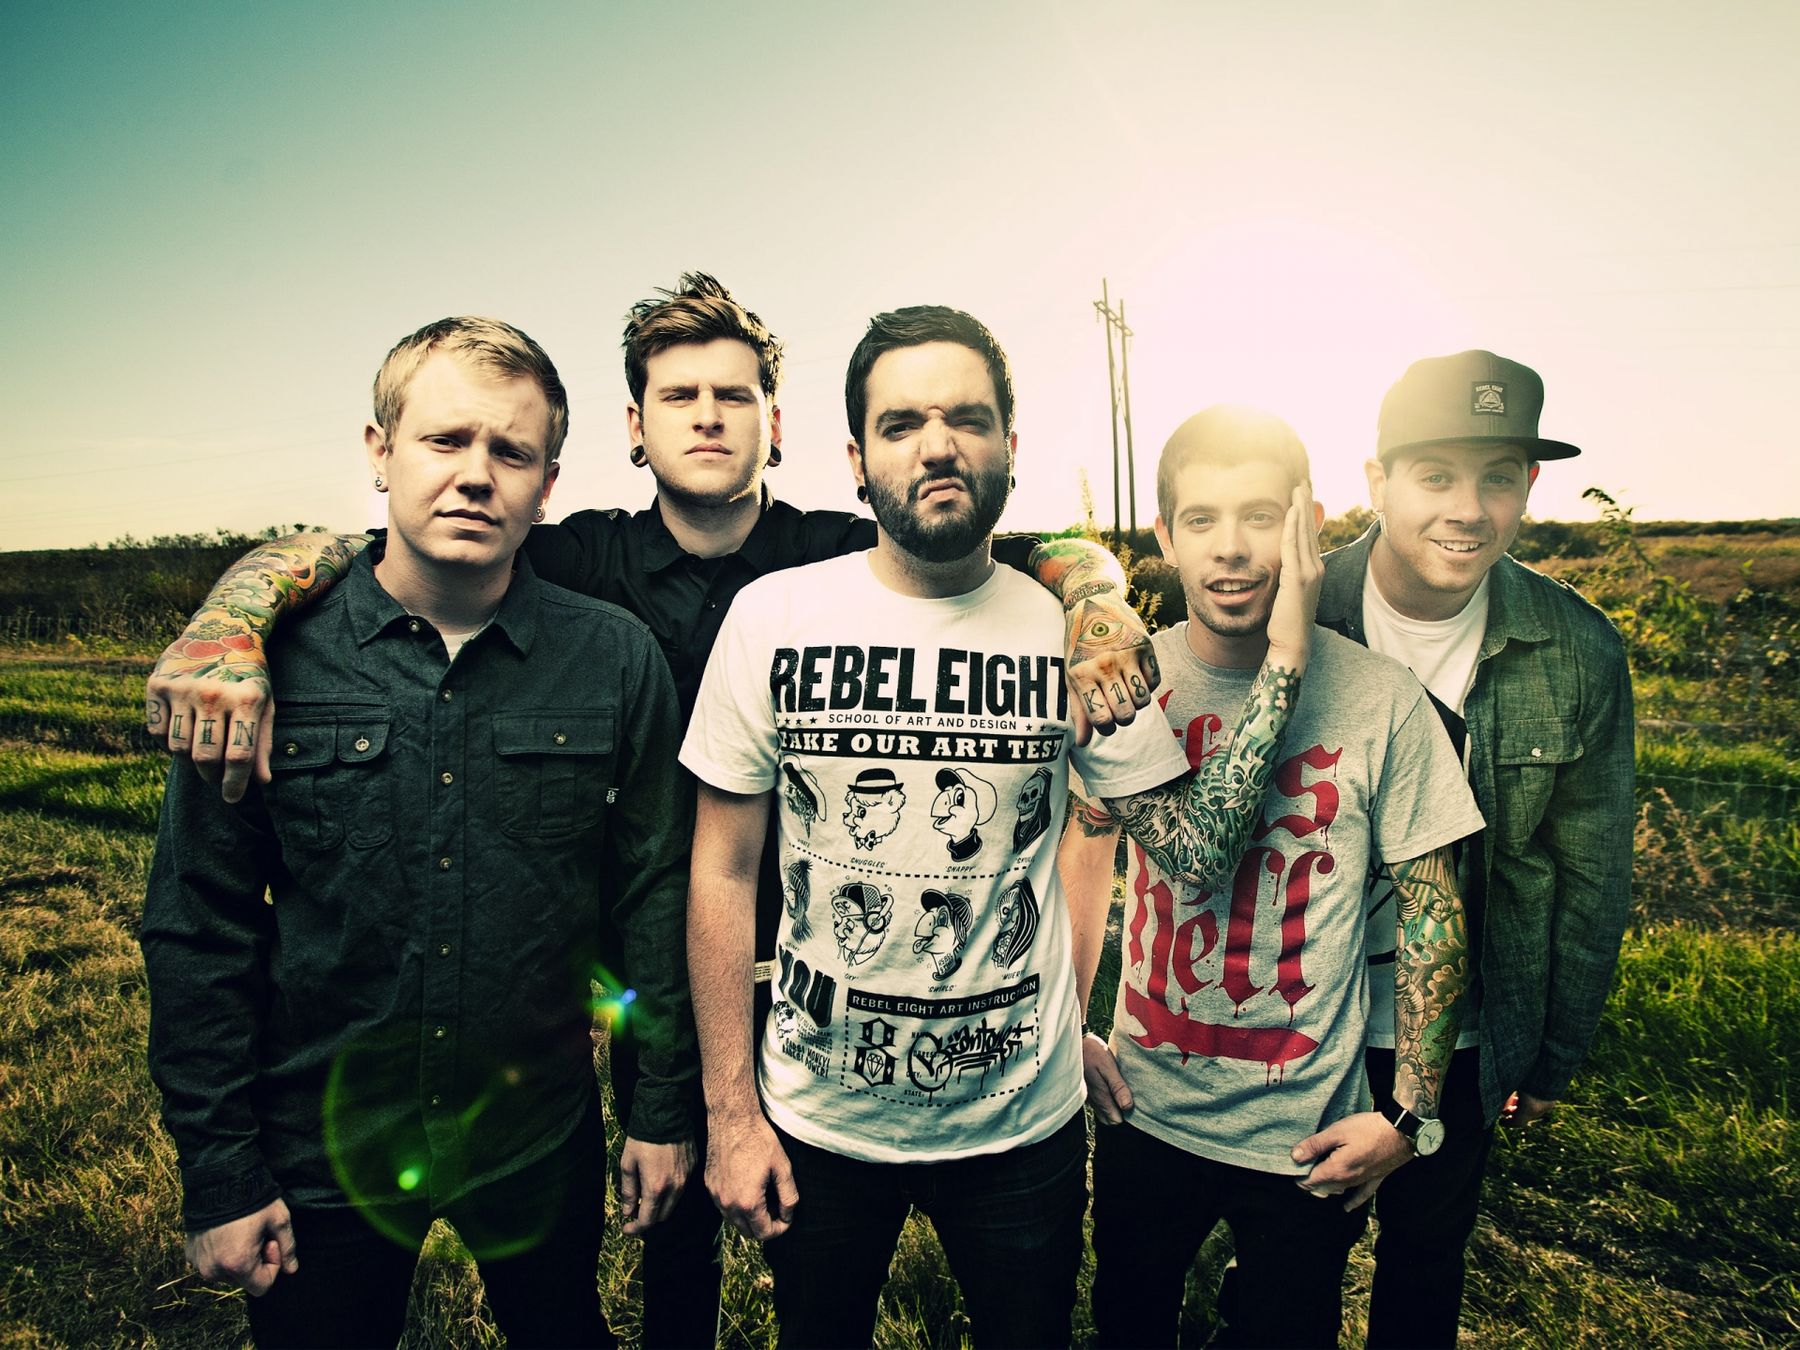 name a day to remember wallpaper 1920 category a day to remember image 1800x1350